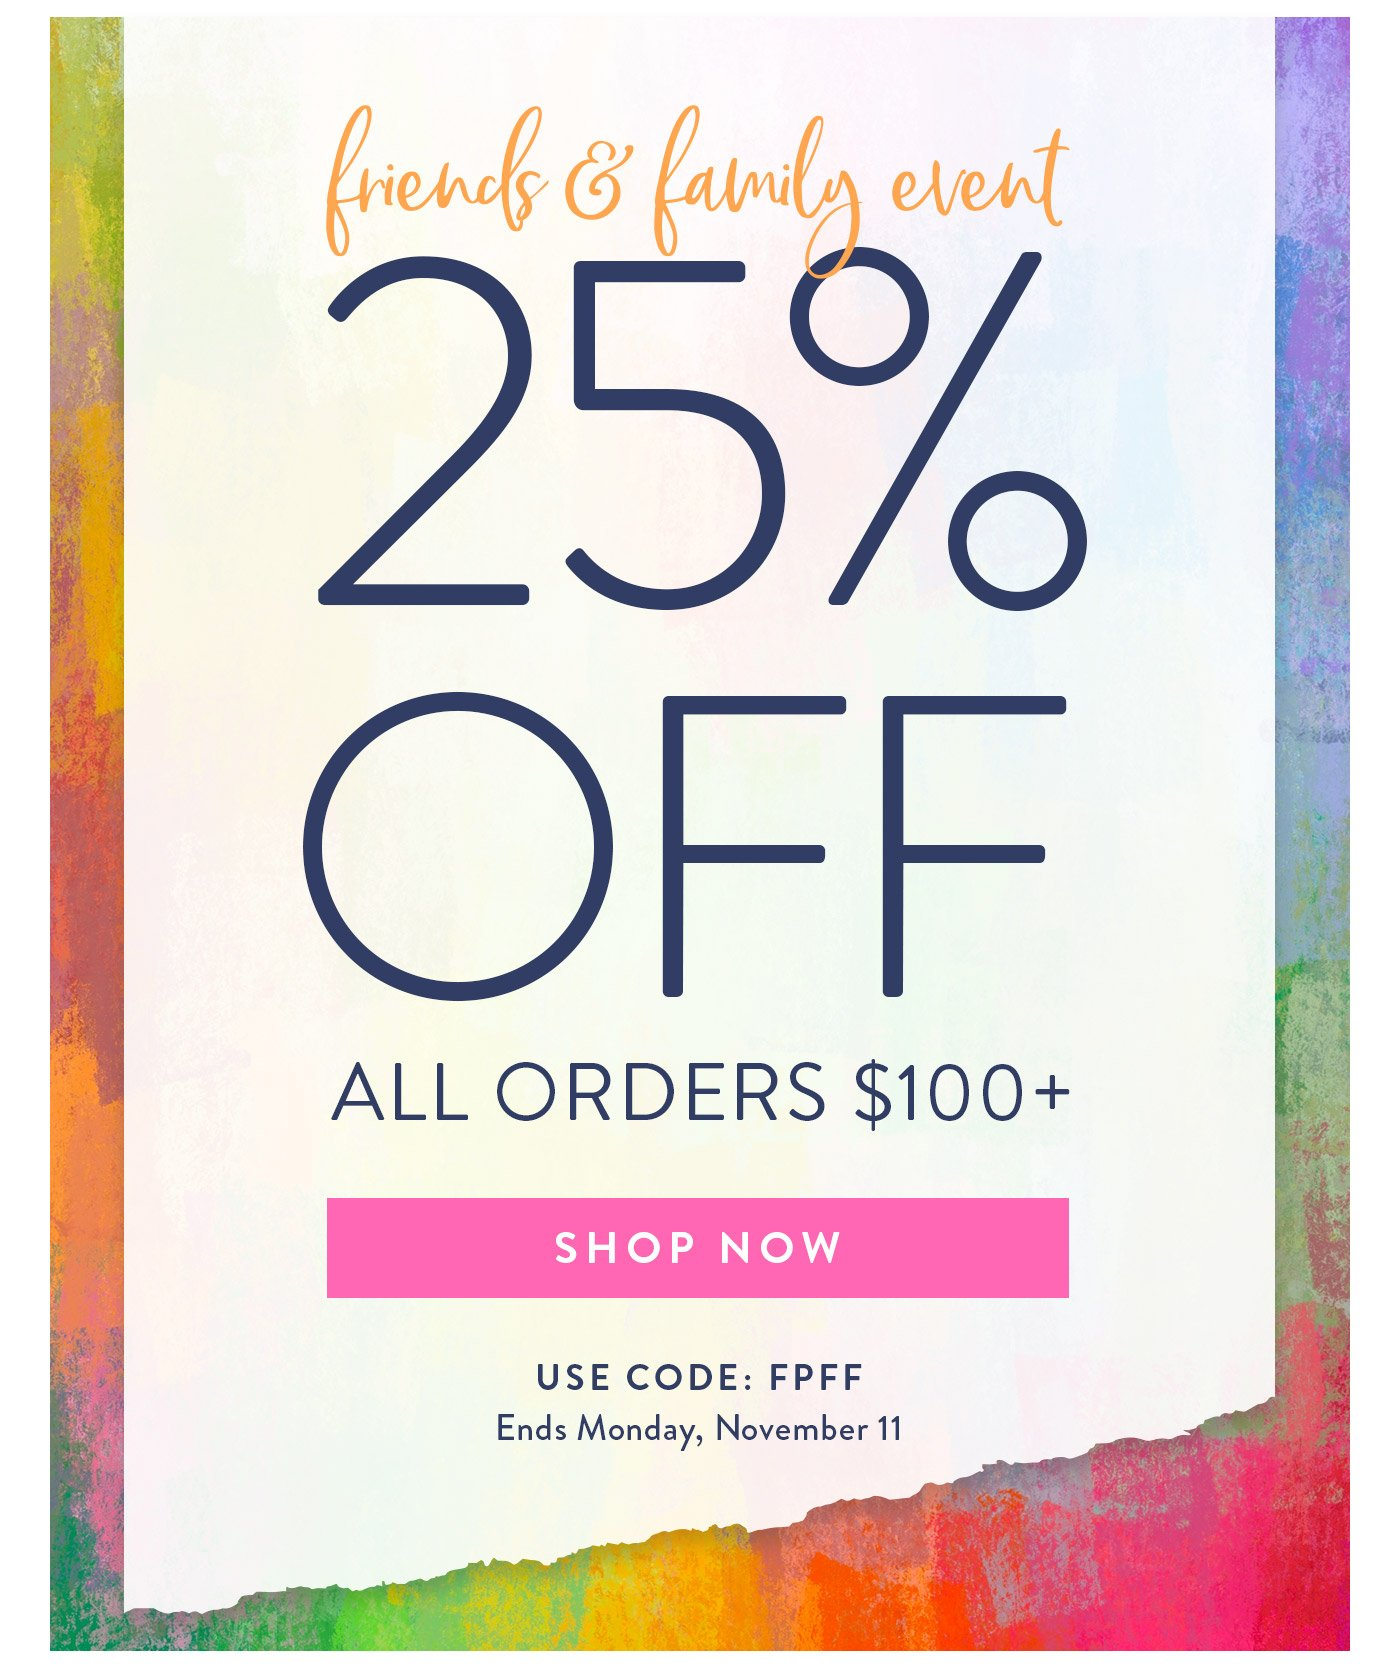 Friends and family event! 25% off all orders over $100 with code FPFF. Ends November 11.